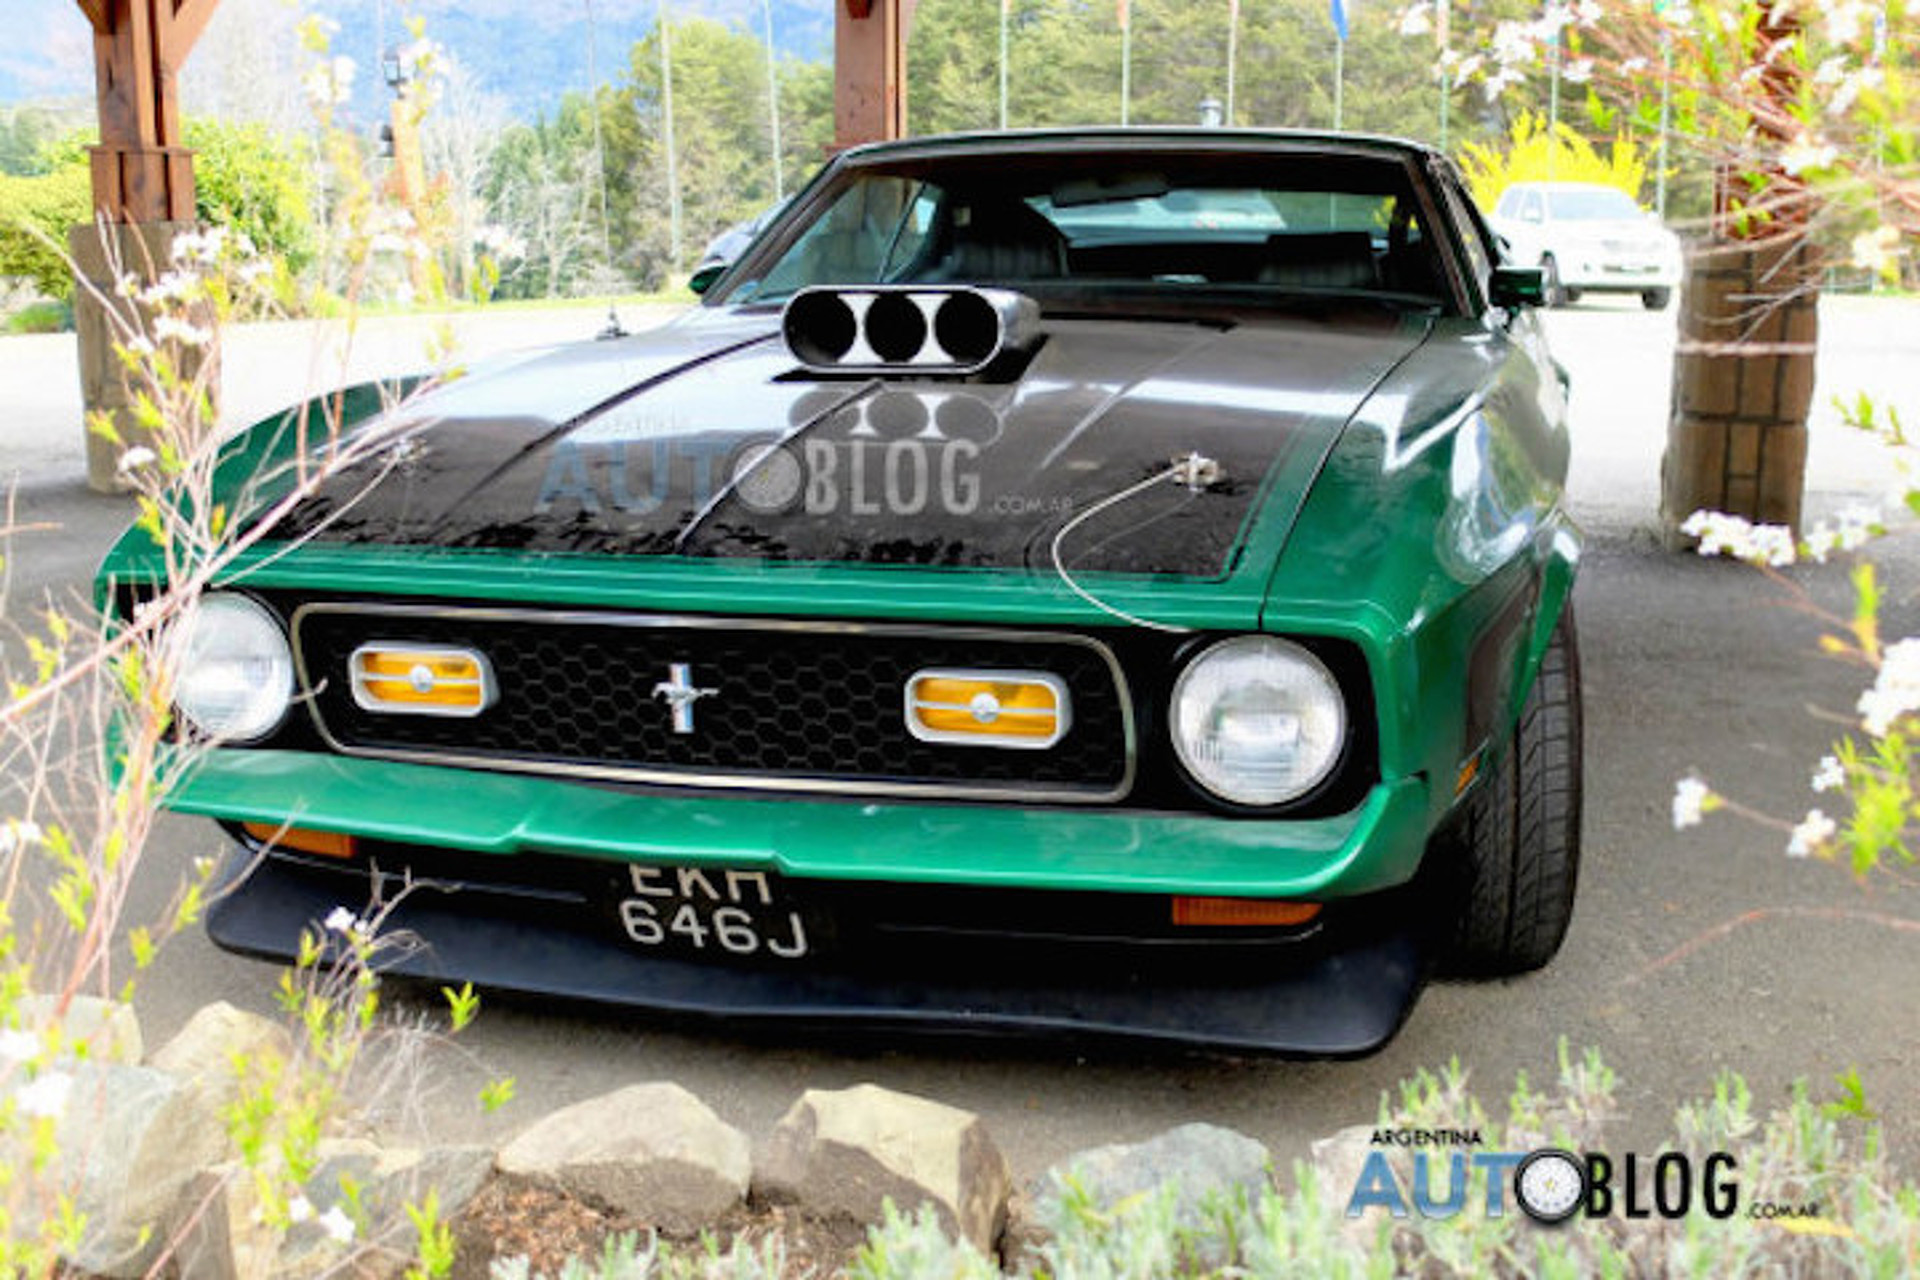 Top gear hits patagonia in three gorgeous classics publicscrutiny Gallery